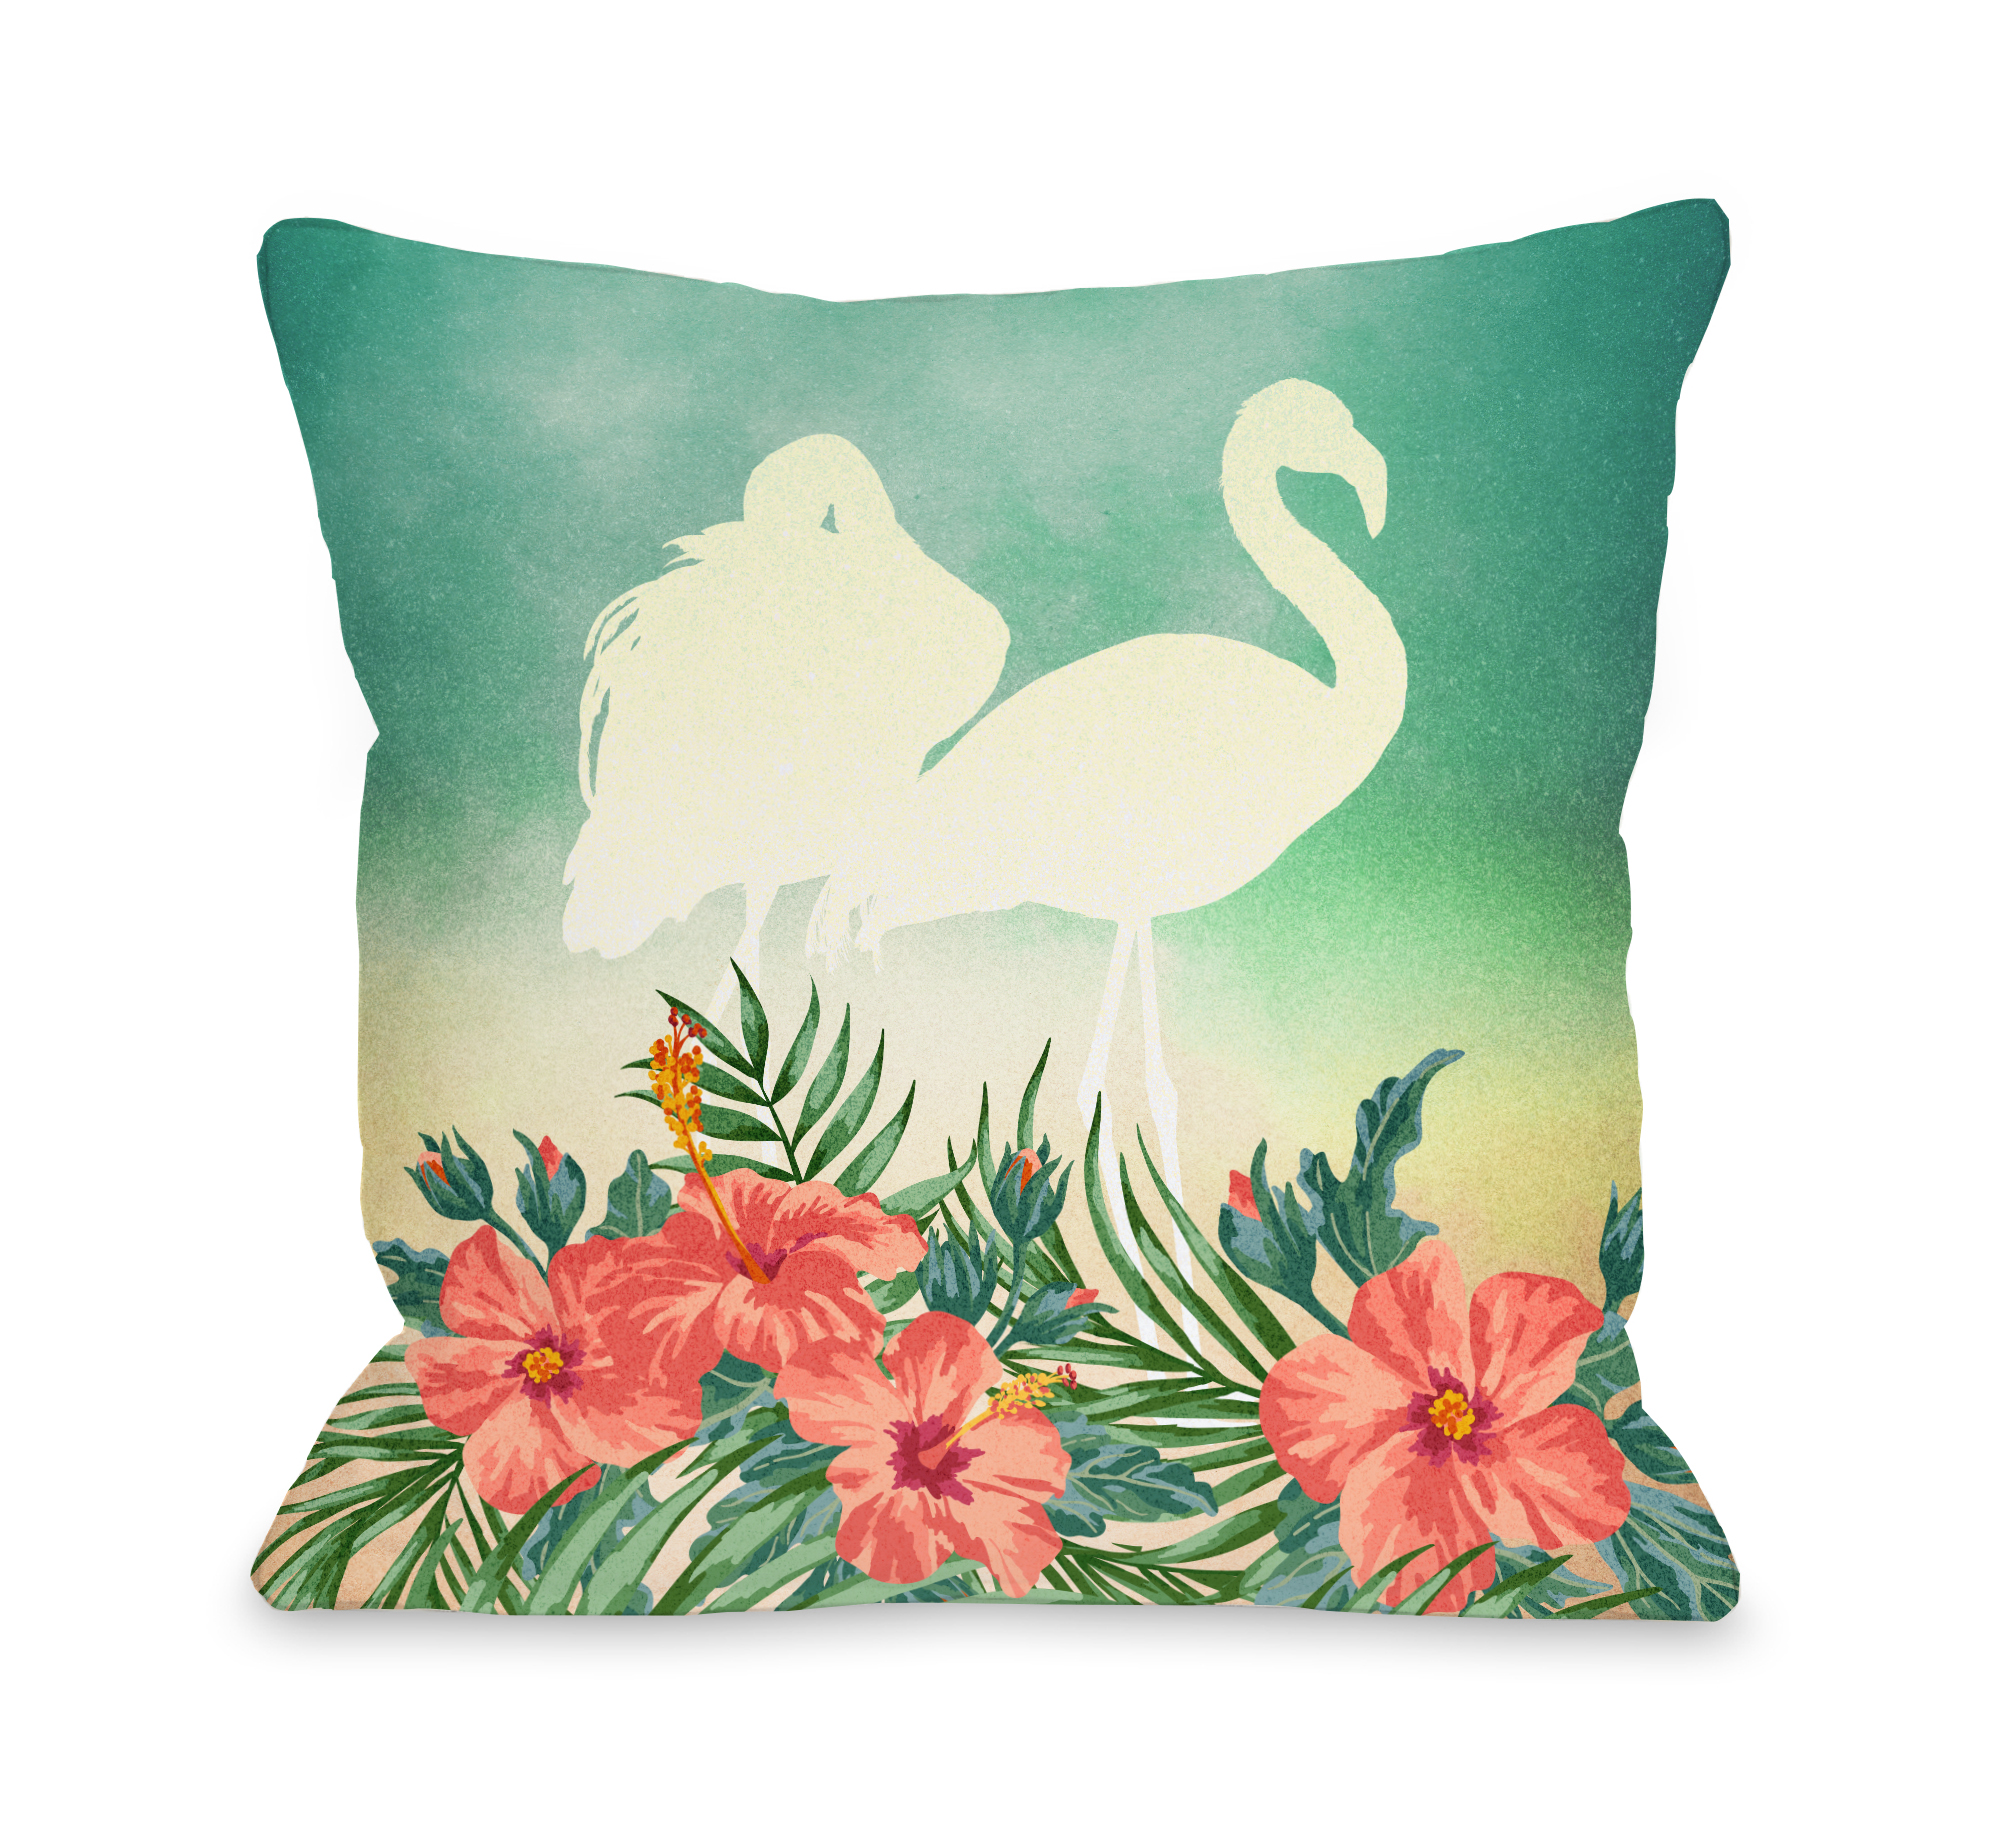 Meigan - Multi 16x16 Pillow by OBC